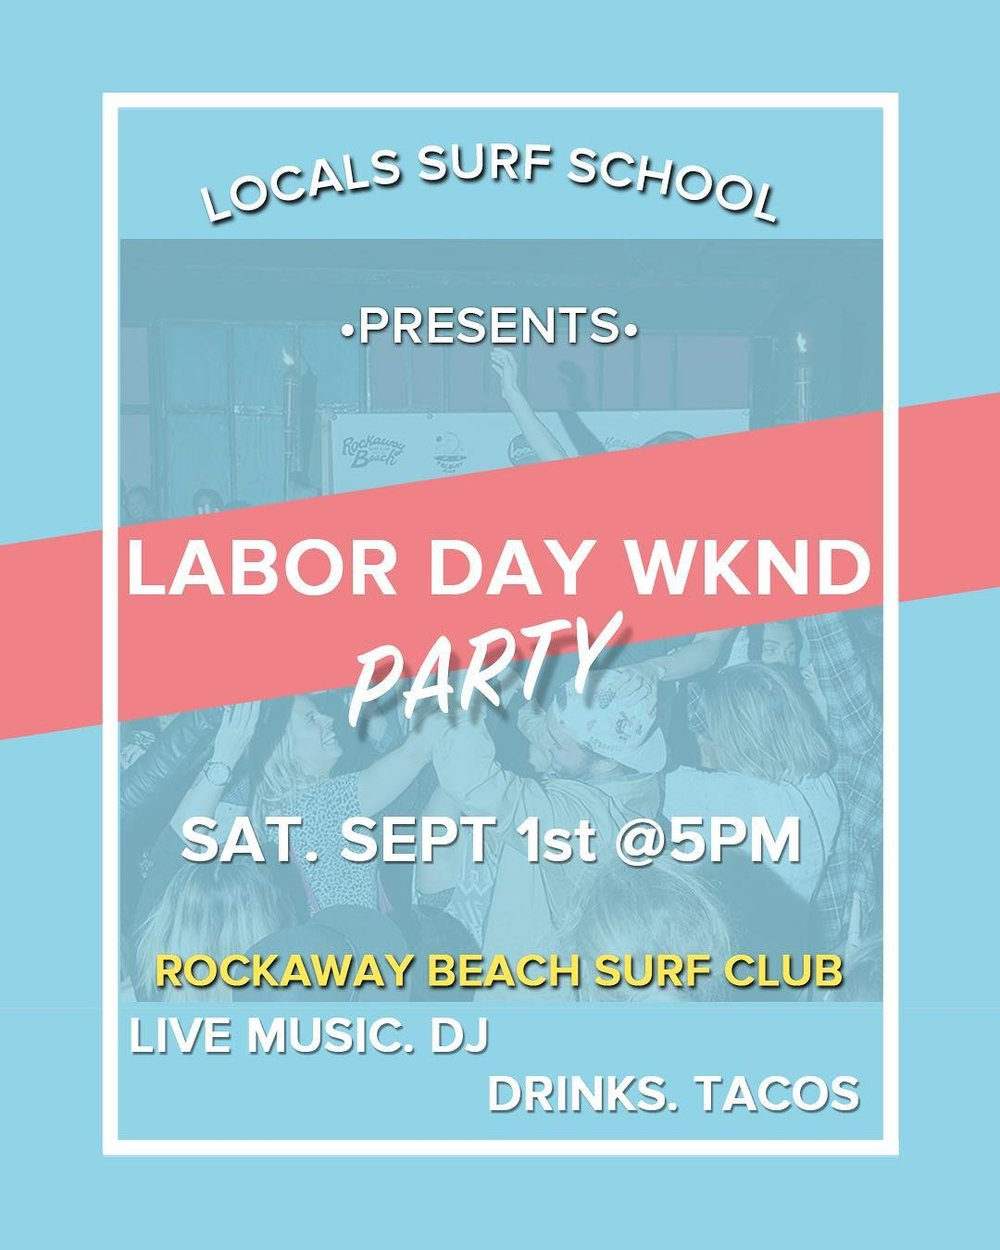 labor day weekend party locals surf school rockaway beach surf club